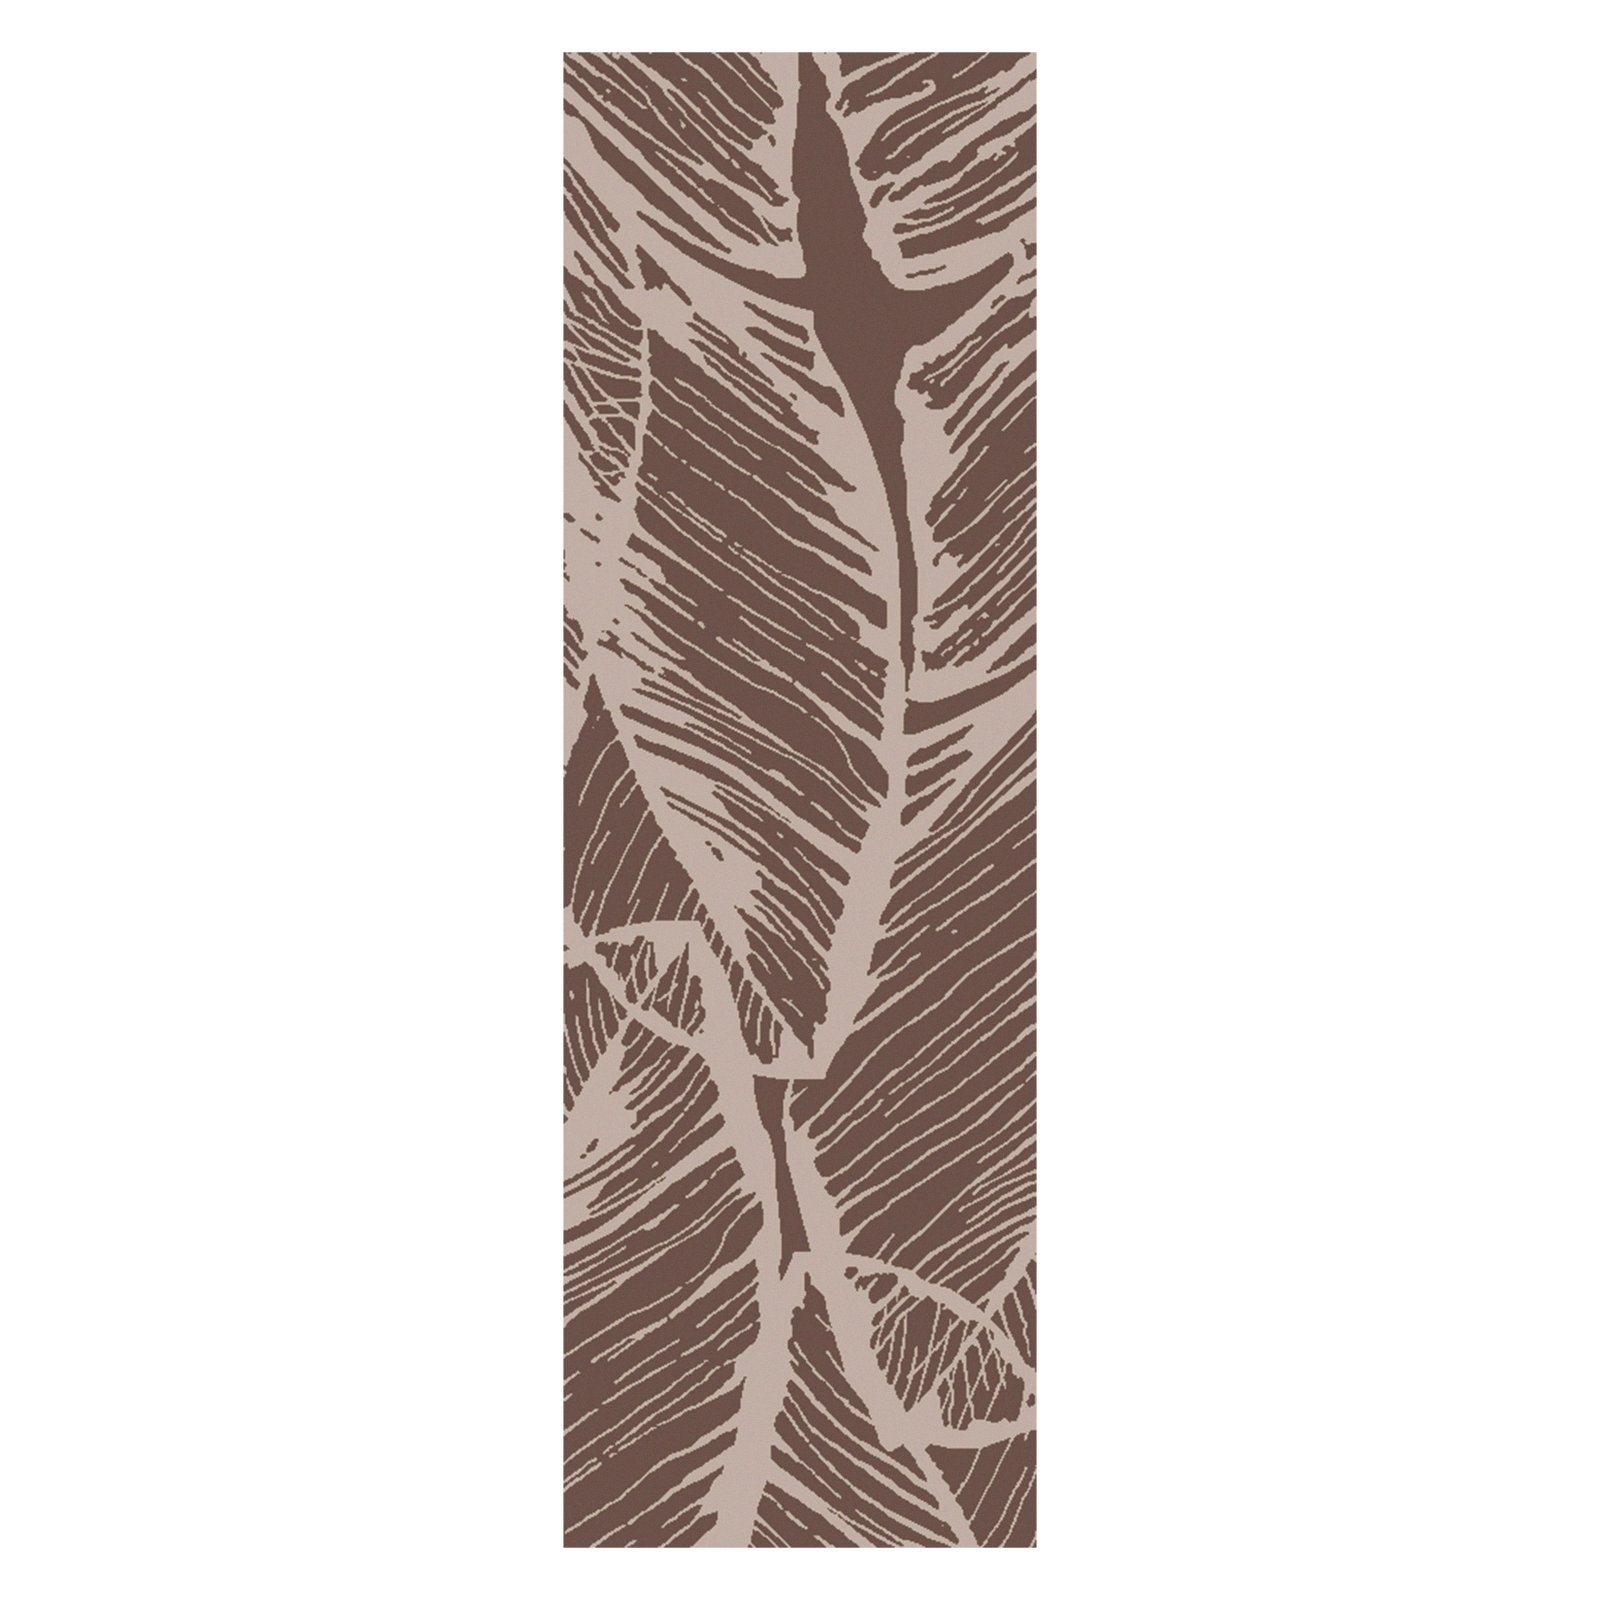 Surya by Candice Olsen CAN-2050 Area Rug